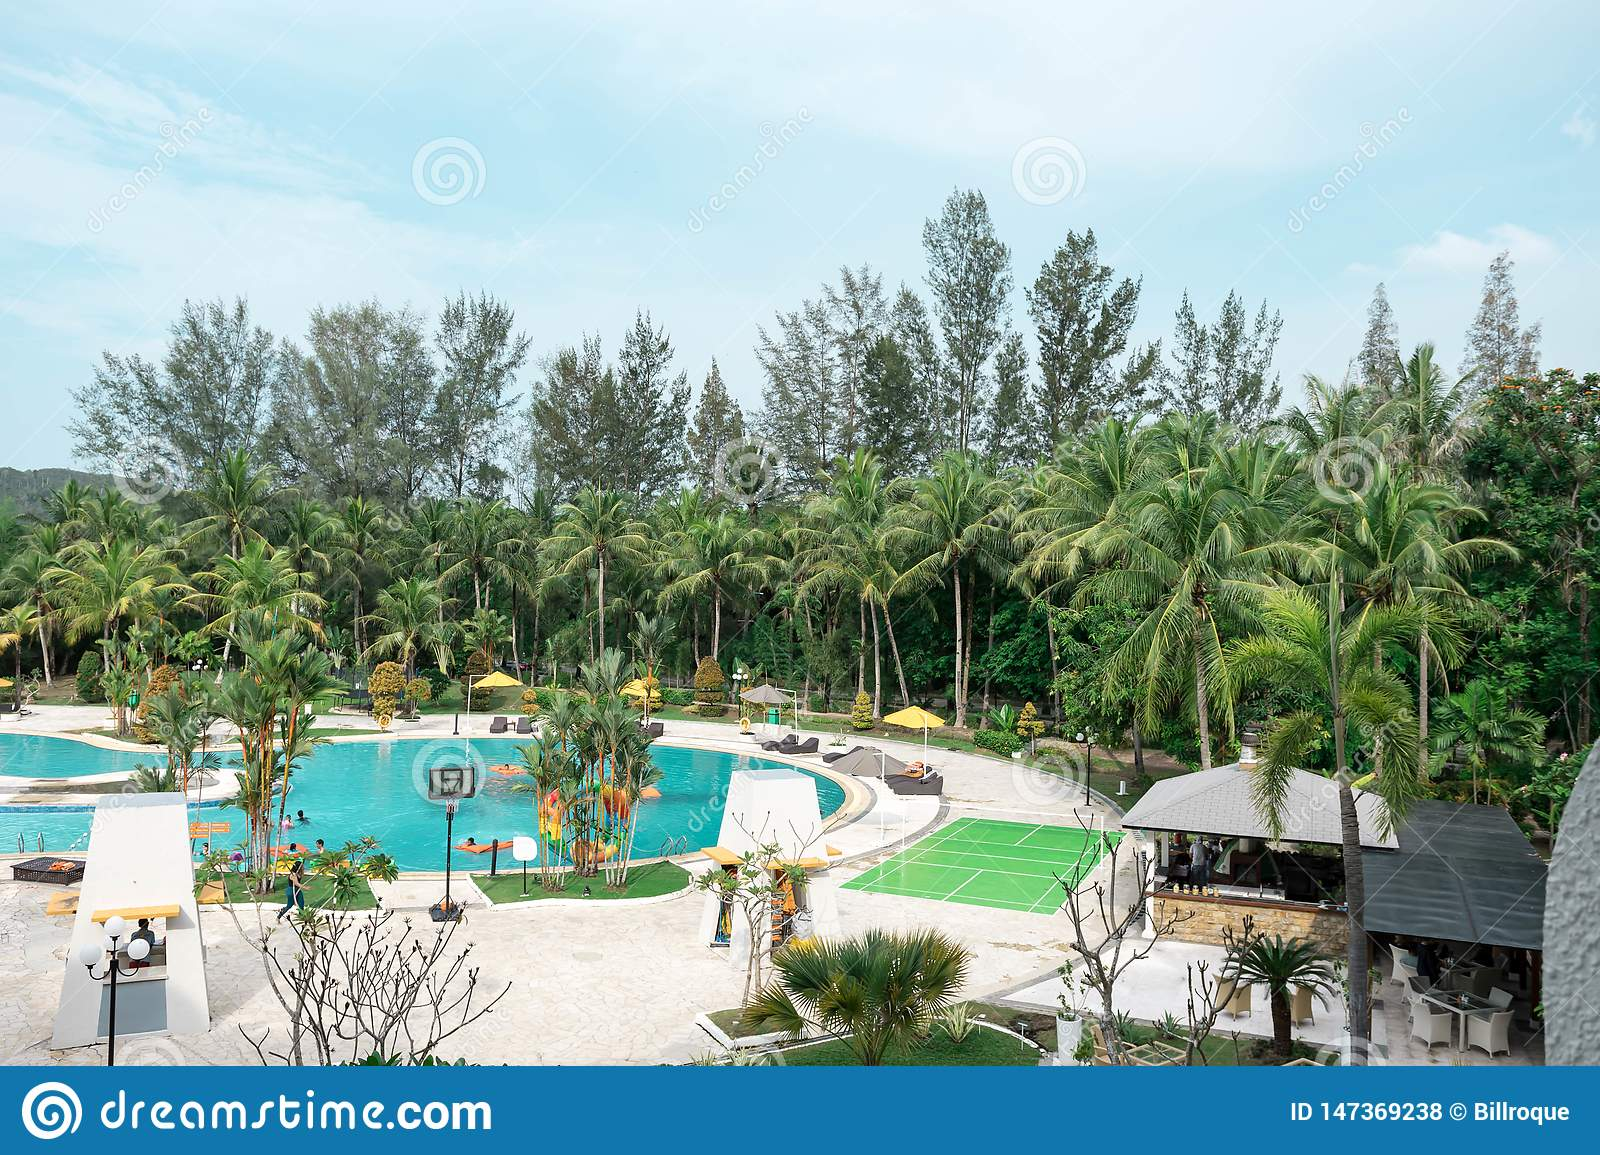 Hotel resort and swimming pool area in waterfront Batam, Indonesia, May 4, 2019